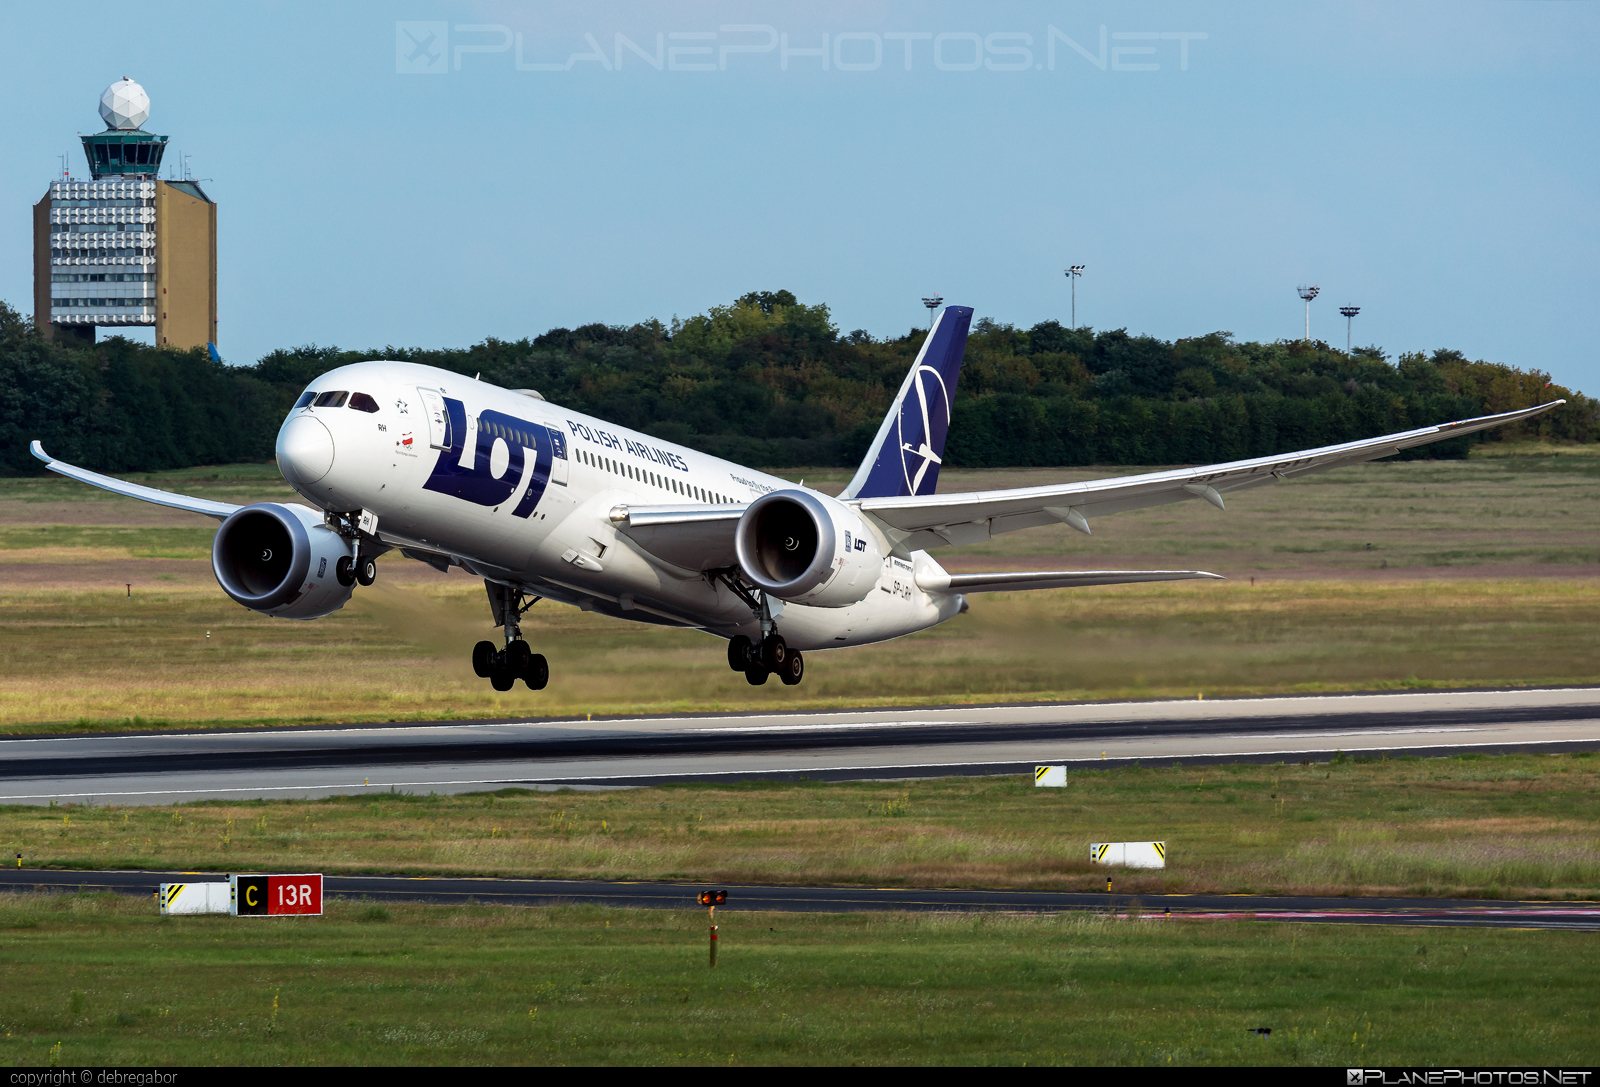 Boeing 787-8 Dreamliner - SP-LRH operated by LOT Polish Airlines #b787 #boeing #boeing787 #dreamliner #lot #lotpolishairlines